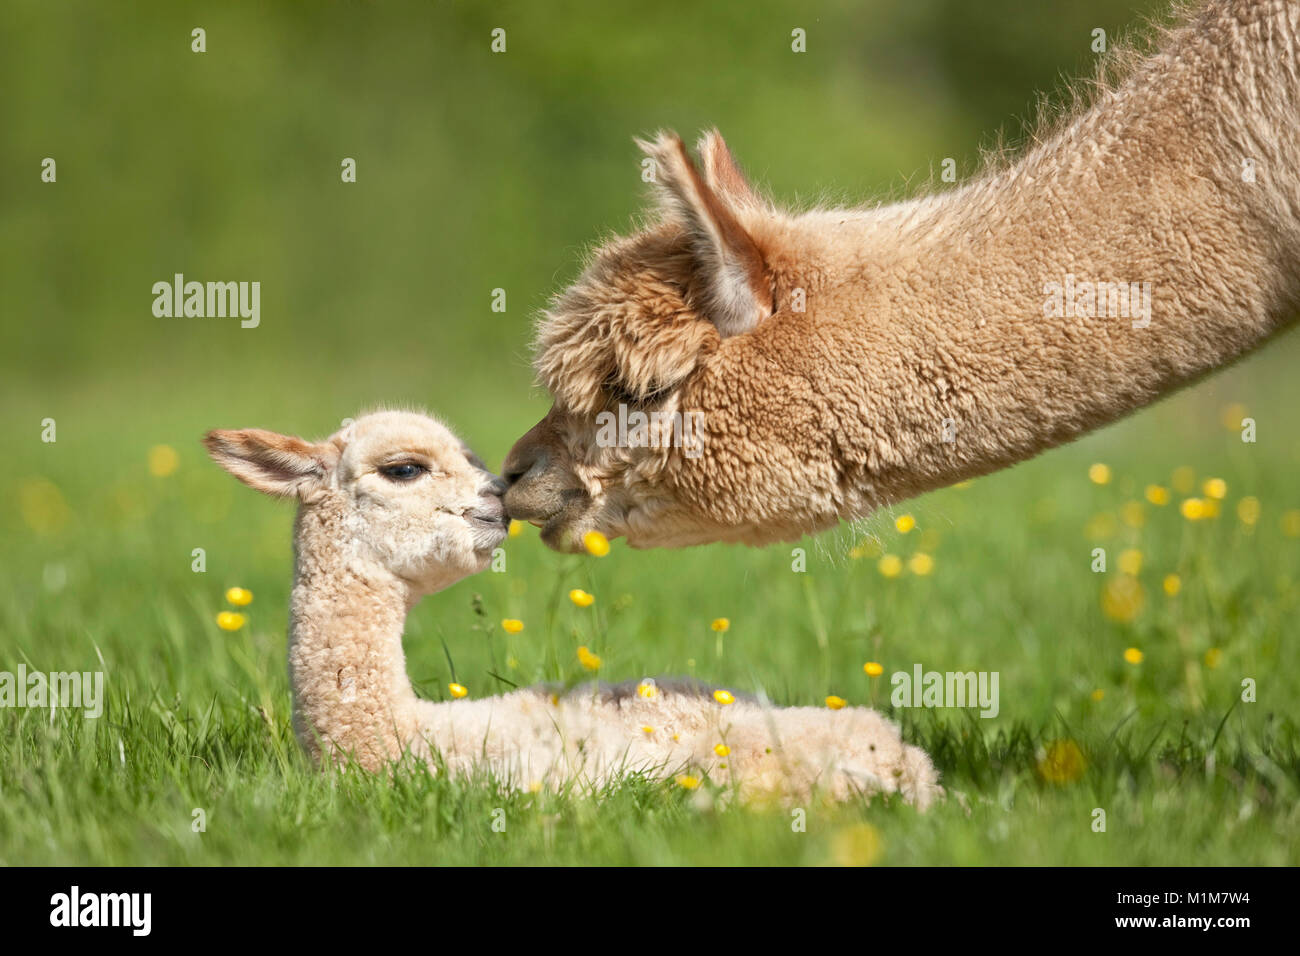 Alpaca (Lama pacos, Vicugna pacos). Mother sniffing at young on a meadow. Germany - Stock Image